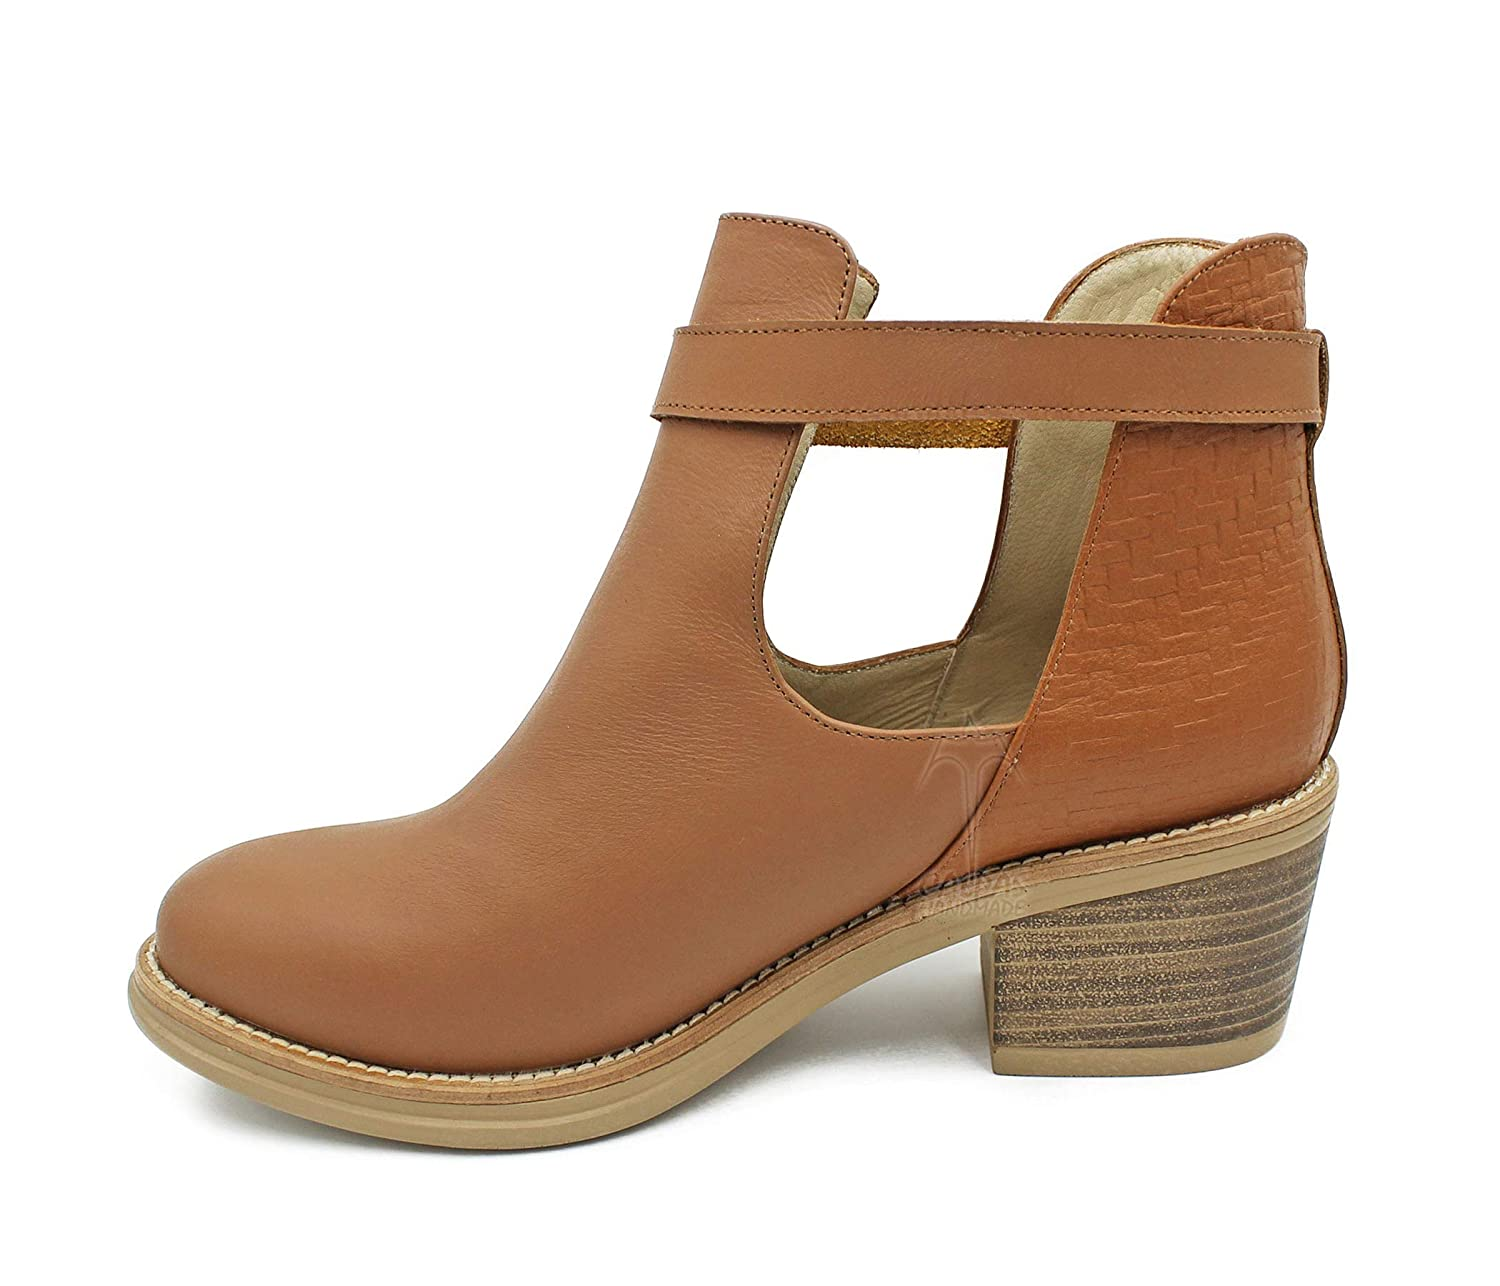 Women's leather ankle San New Free Shipping Diego Mall booties printed P boots open with